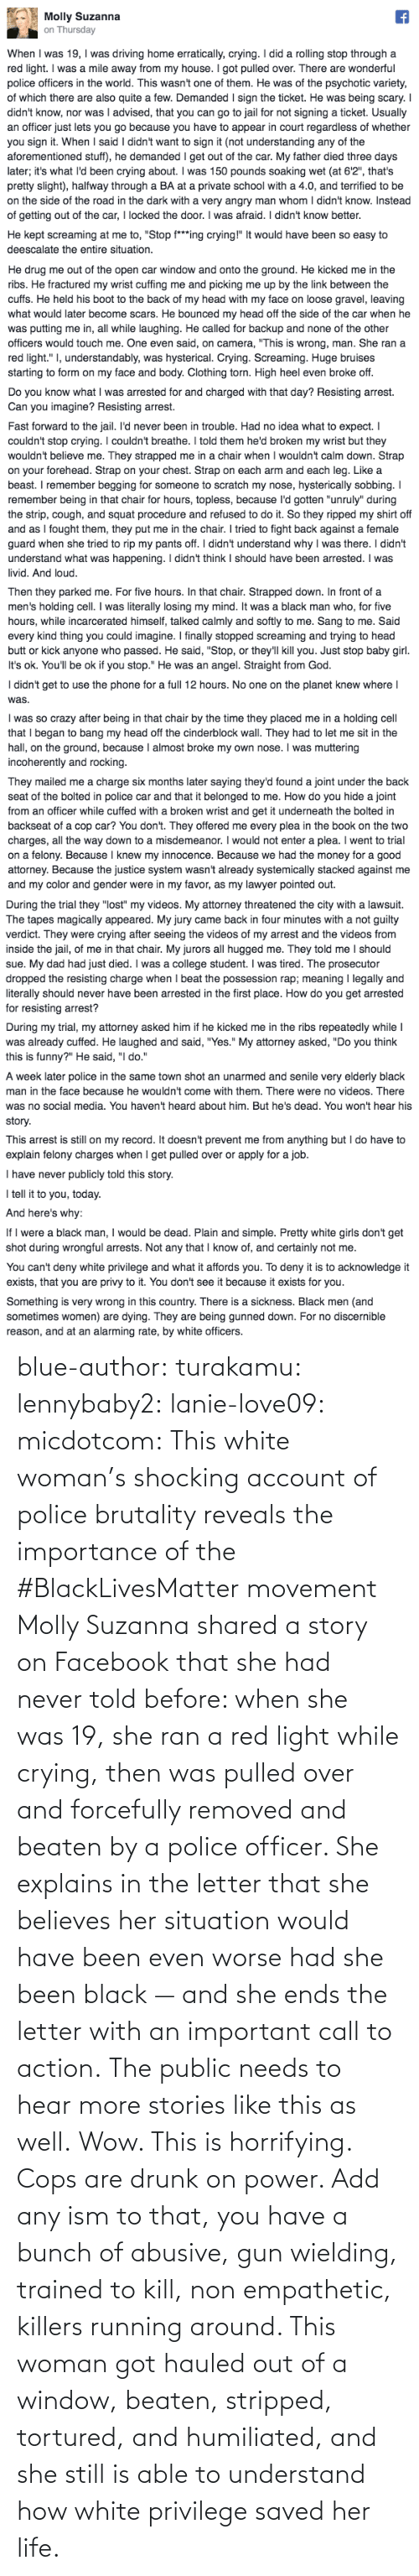 Police: blue-author: turakamu:  lennybaby2:  lanie-love09:  micdotcom:  This white woman's shocking account of police brutality reveals the importance of the #BlackLivesMatter movement Molly Suzanna shared a story on Facebook that she had never told before: when she was 19, she ran a red light while crying, then was pulled over and forcefully removed and beaten by a police officer. She explains in the letter that she believes her situation would have been even worse had she been black — and she ends the letter with an important call to action.  The public needs to hear more stories like this as well.  Wow. This is horrifying.  Cops are drunk on power. Add any ism to that, you have a bunch of abusive, gun wielding, trained to kill, non empathetic, killers running around.    This woman got hauled out of a window, beaten, stripped, tortured, and humiliated, and she still is able to understand how white privilege saved her life.